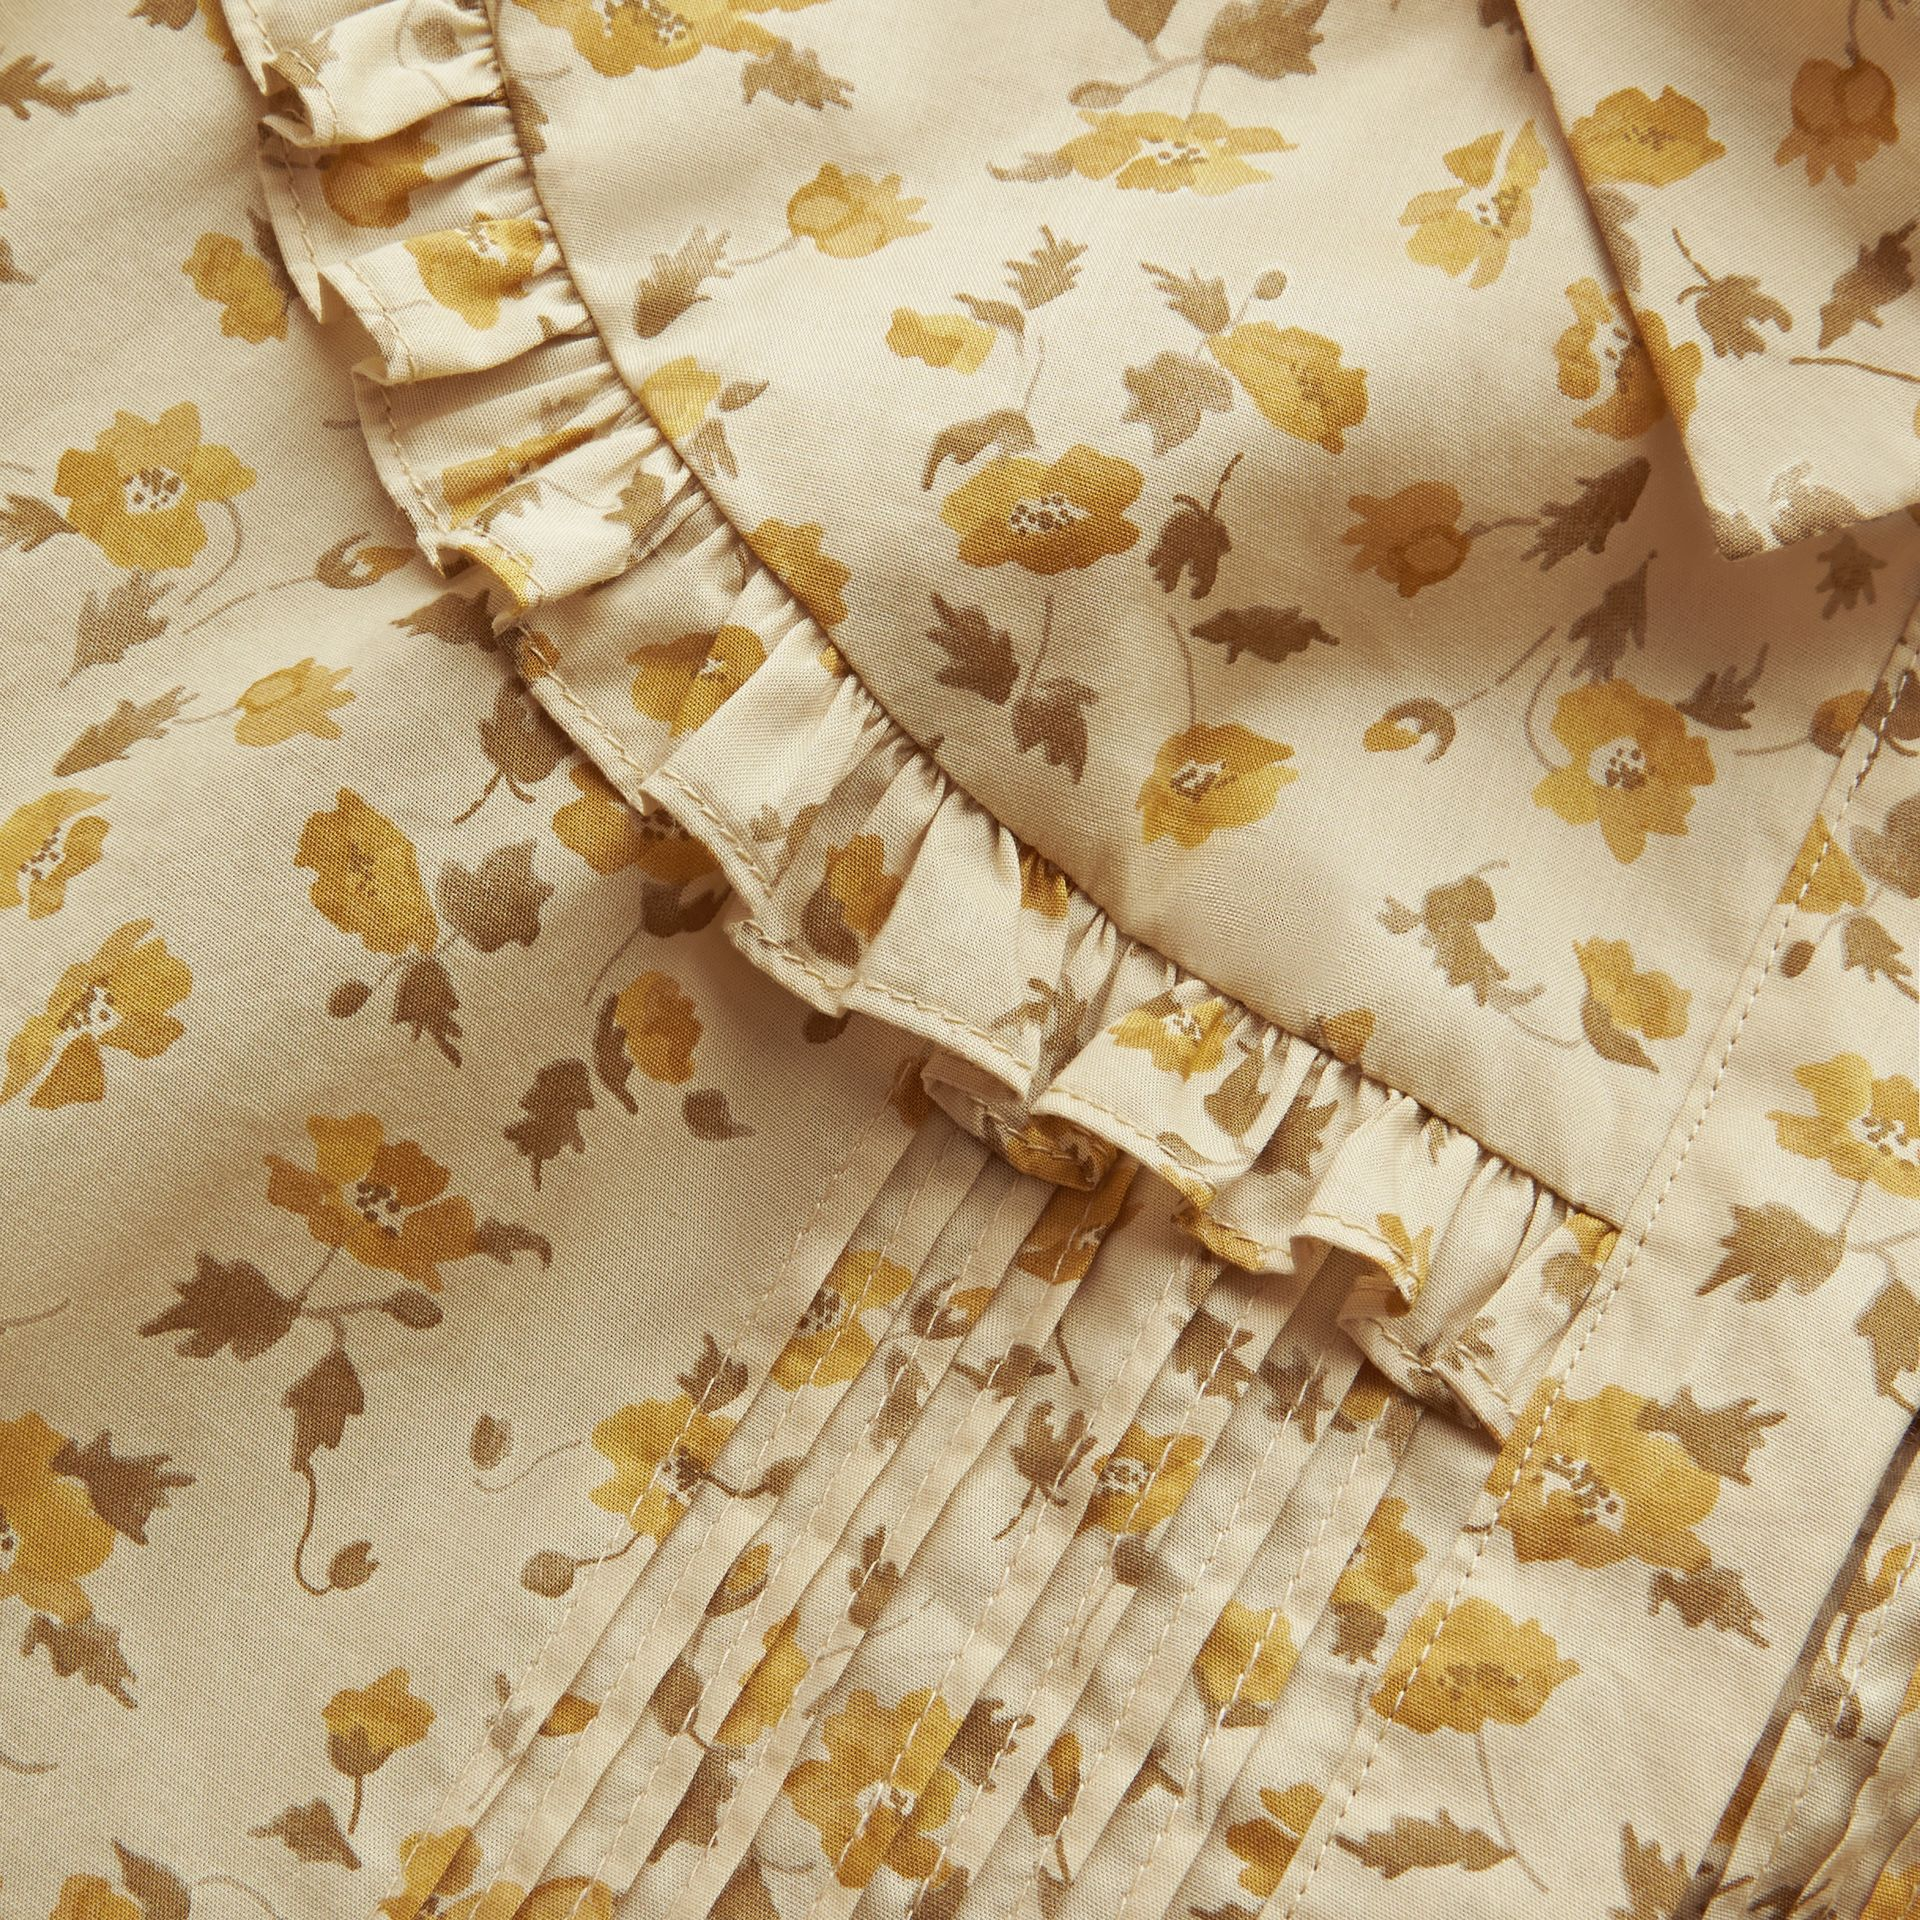 Ruffle Yoke Floral Print Cotton Shirt in Chalk Yellow - Women | Burberry - gallery image 1